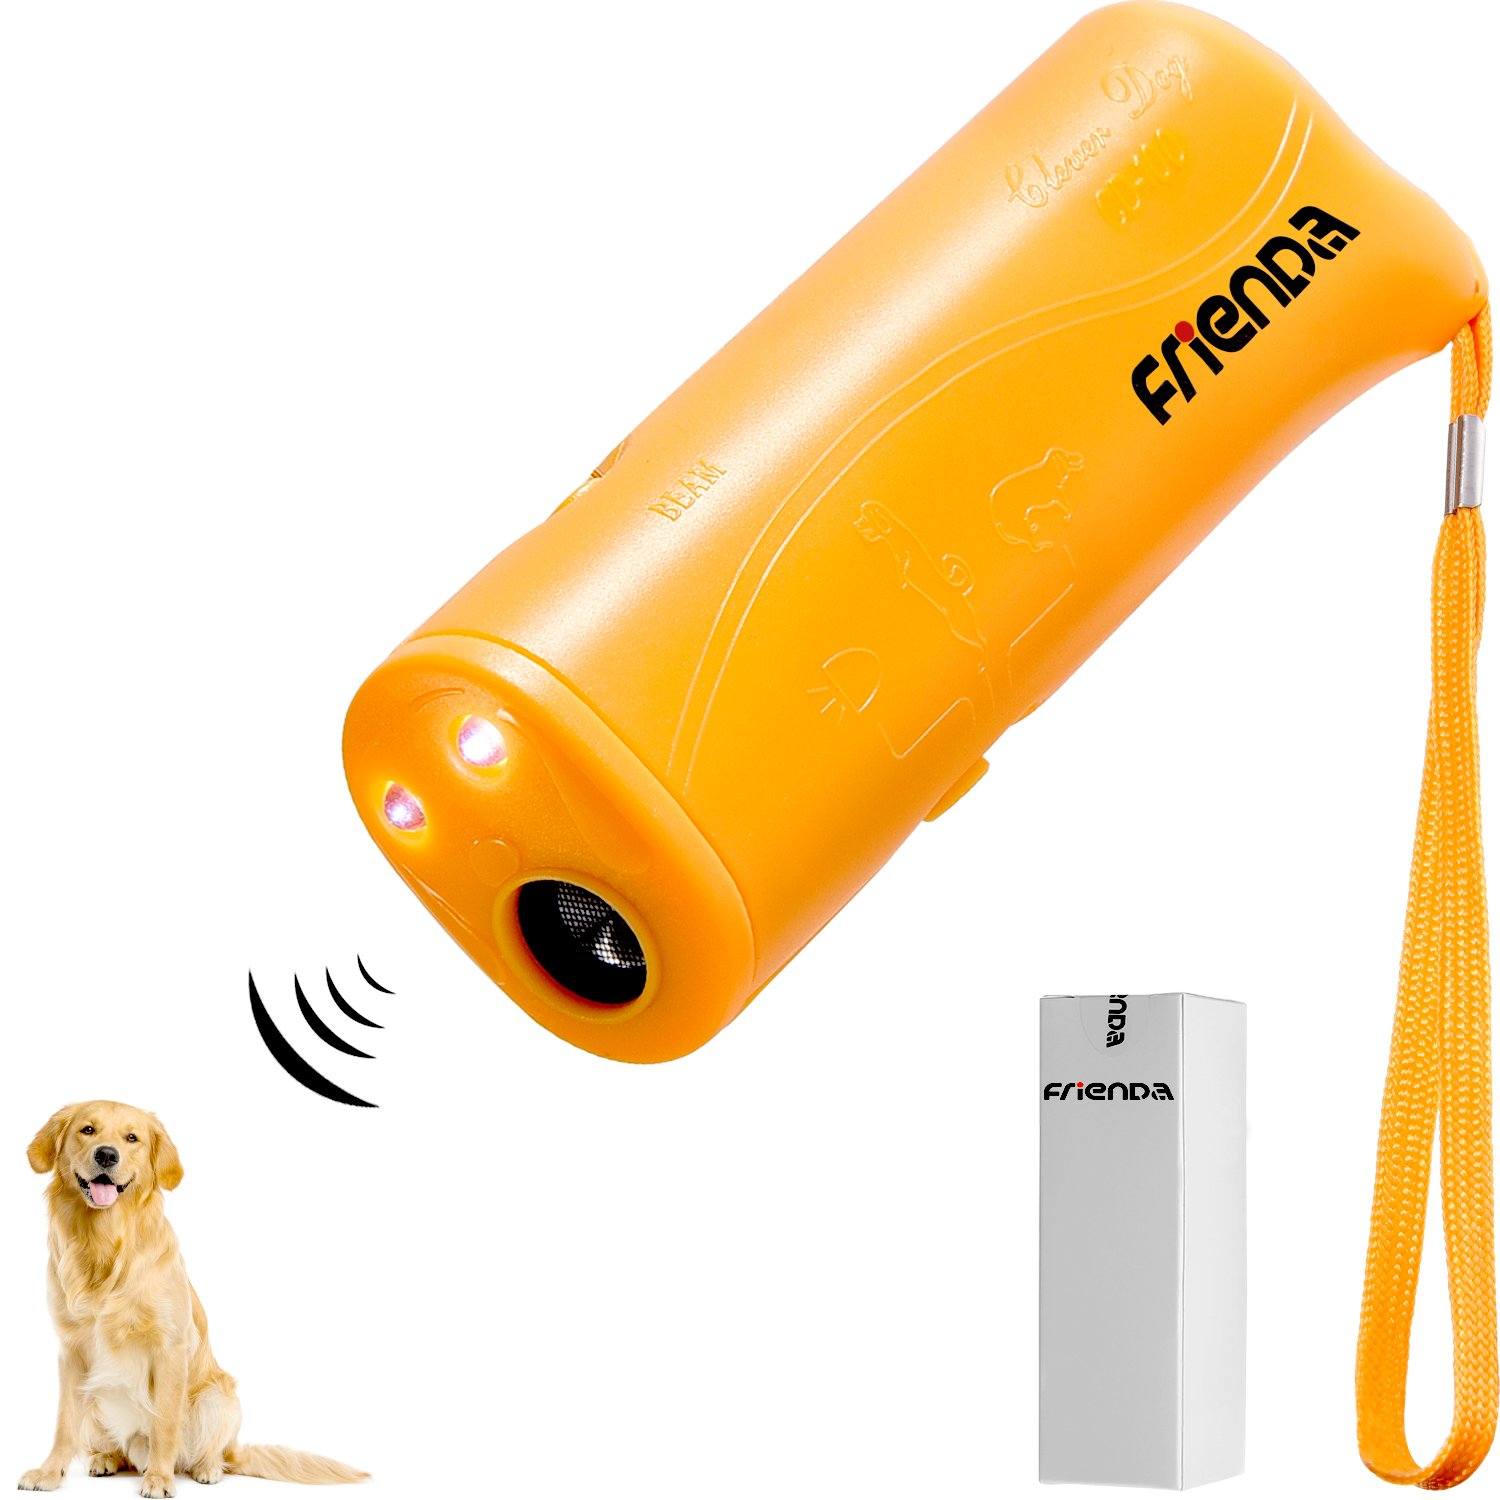 Frienda Ultrasonic Repeller Handheld Training